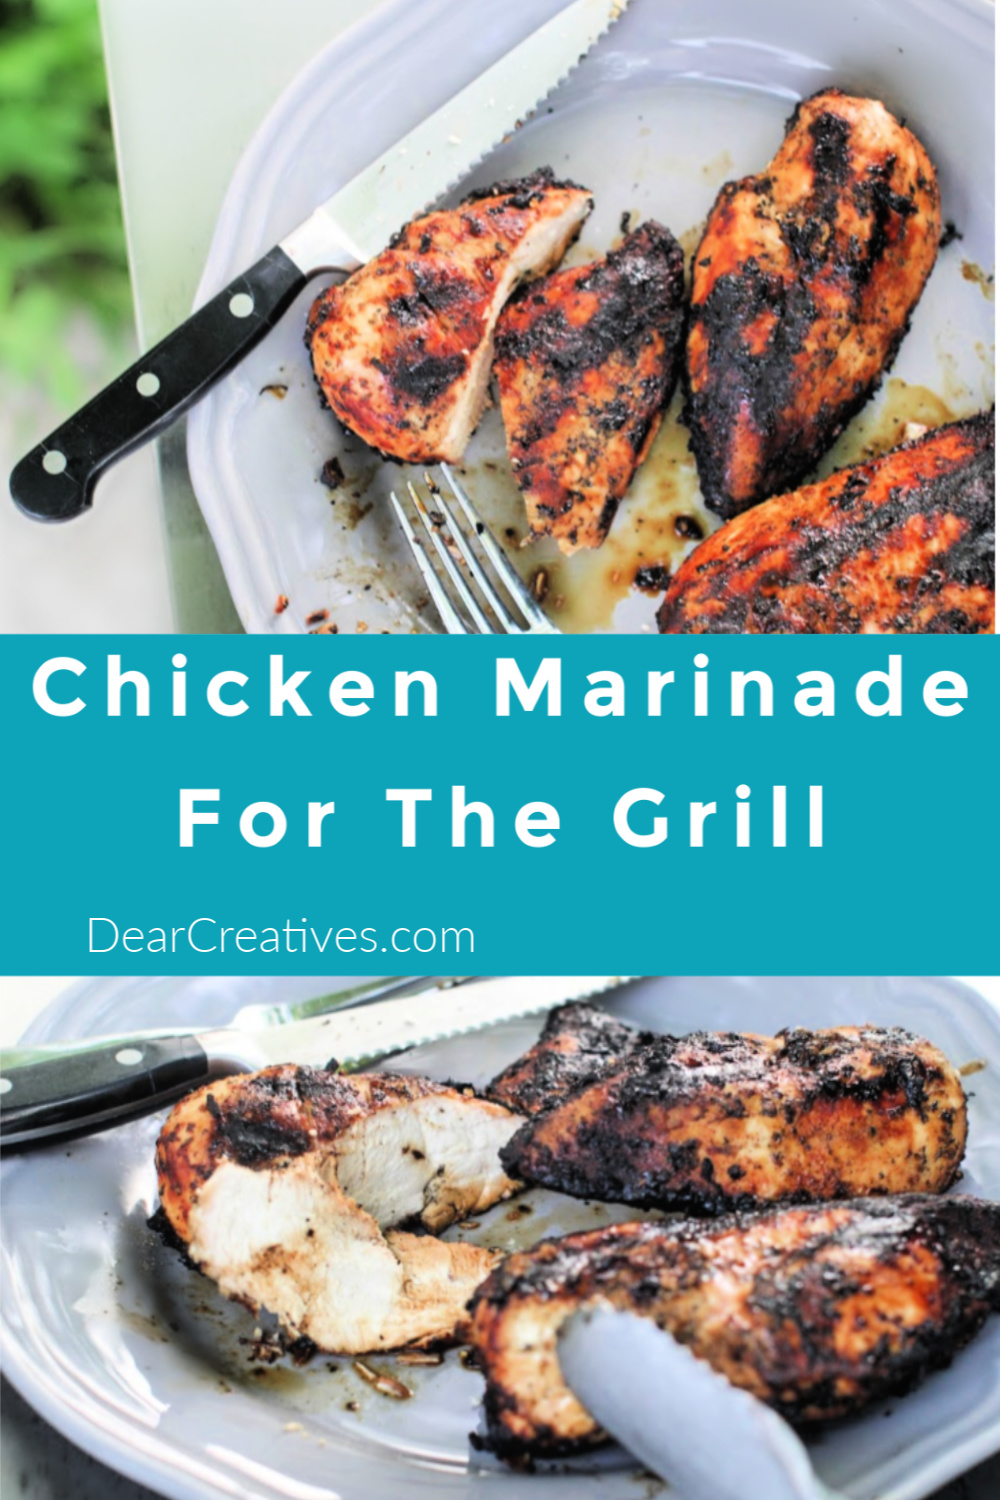 Chicken Marinade For The Grill